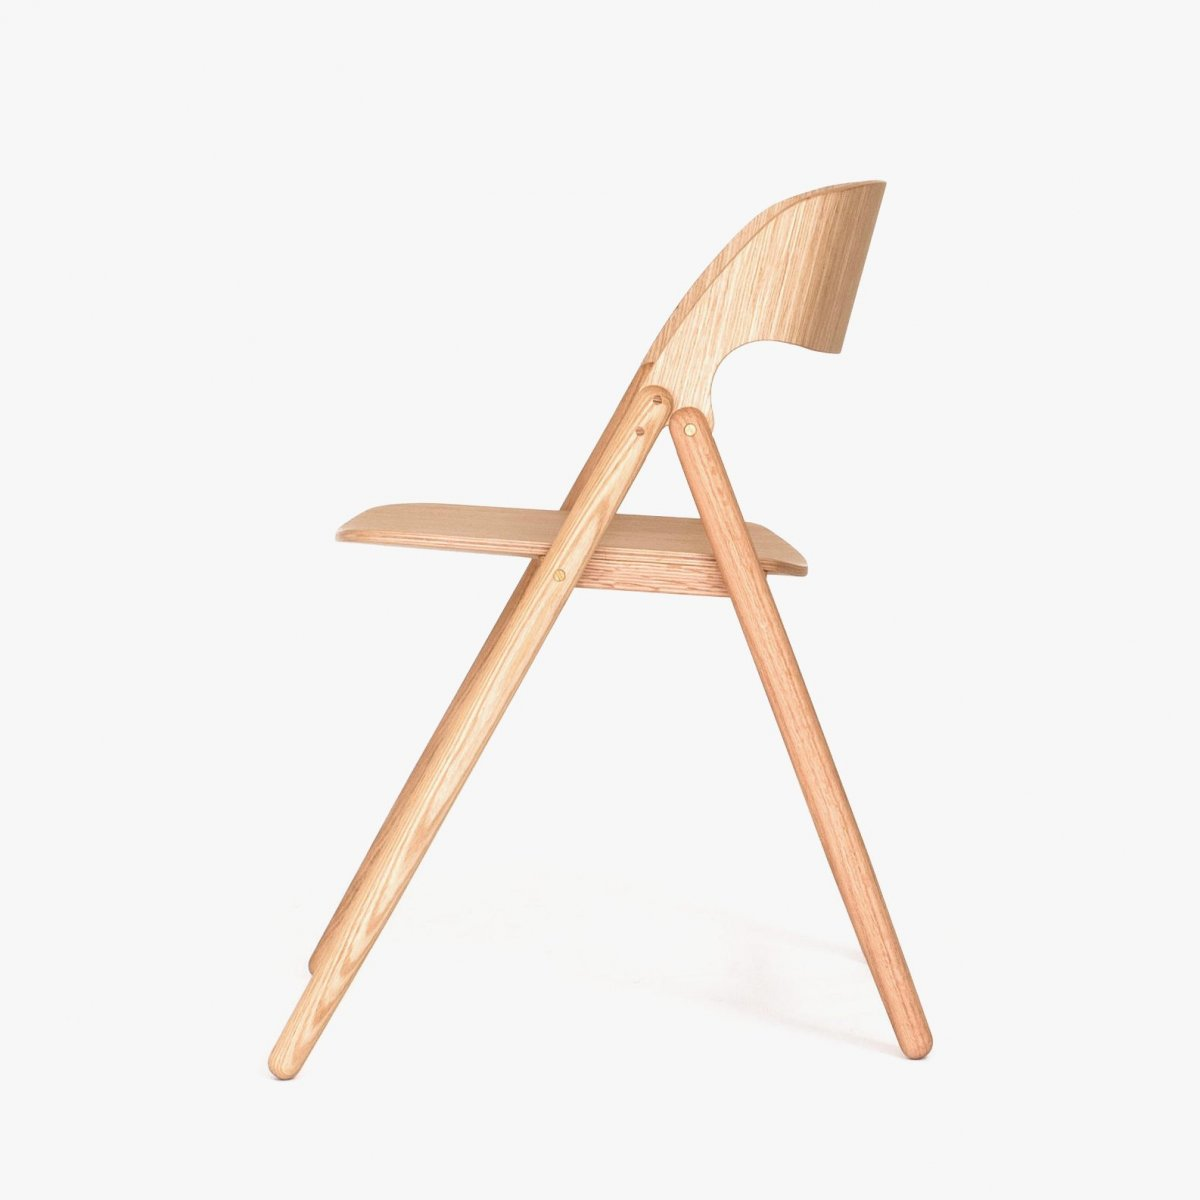 Narin Folding Chair, oak, side view.